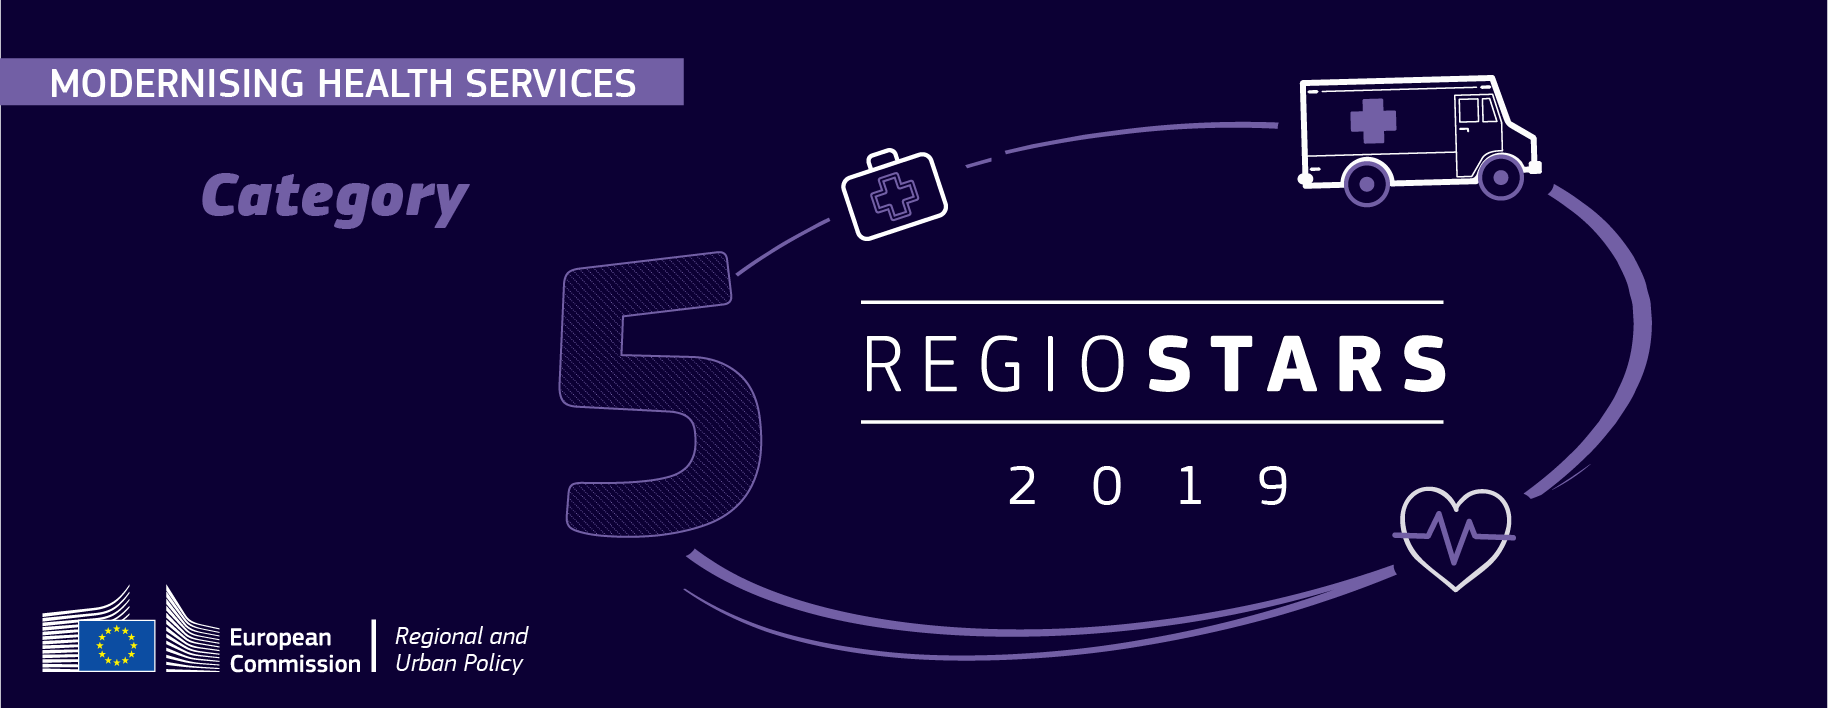 Vote for CASCADE in the REGIOSTARS 2019 Public Choice Award